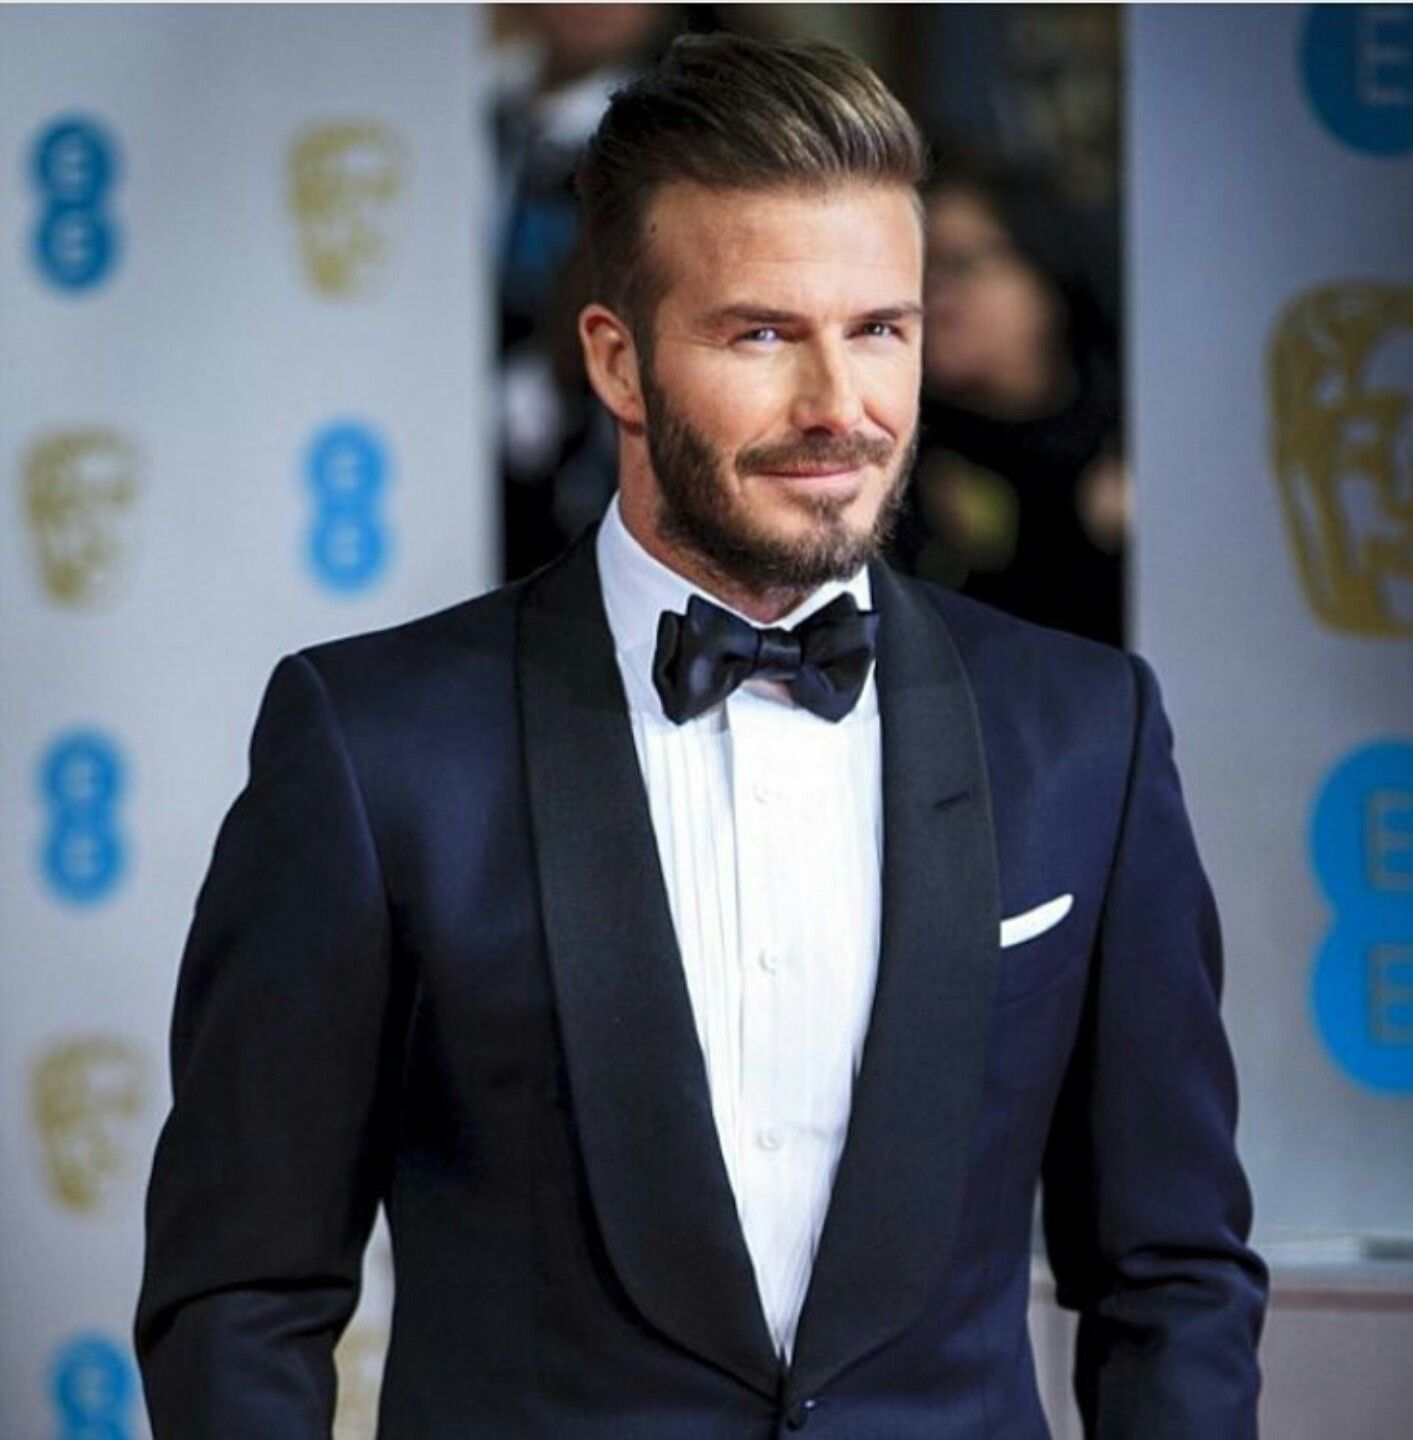 David Beckham in a Navy Tuxedo (With images) | Groom tuxedo navy ...